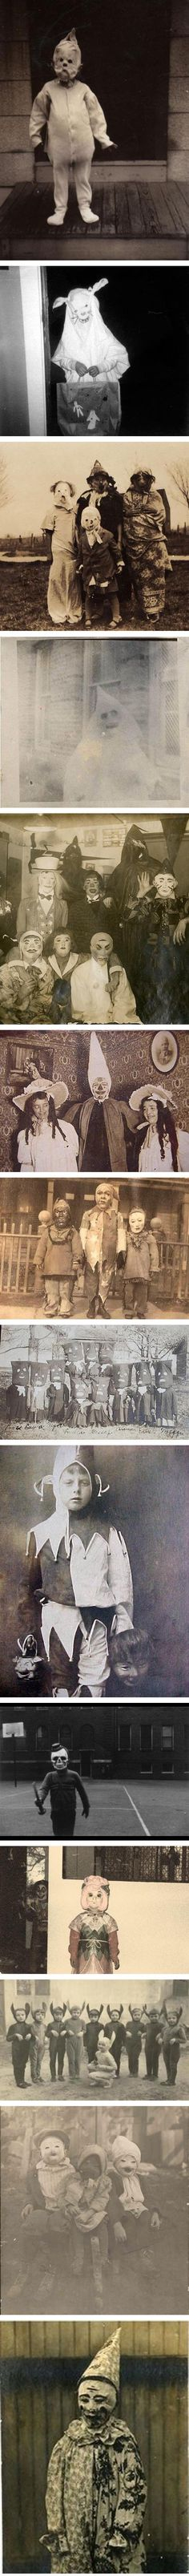 Vintage Halloween Pics.... I'd never open the door for any of these kids! I'd be hiding in my closet!